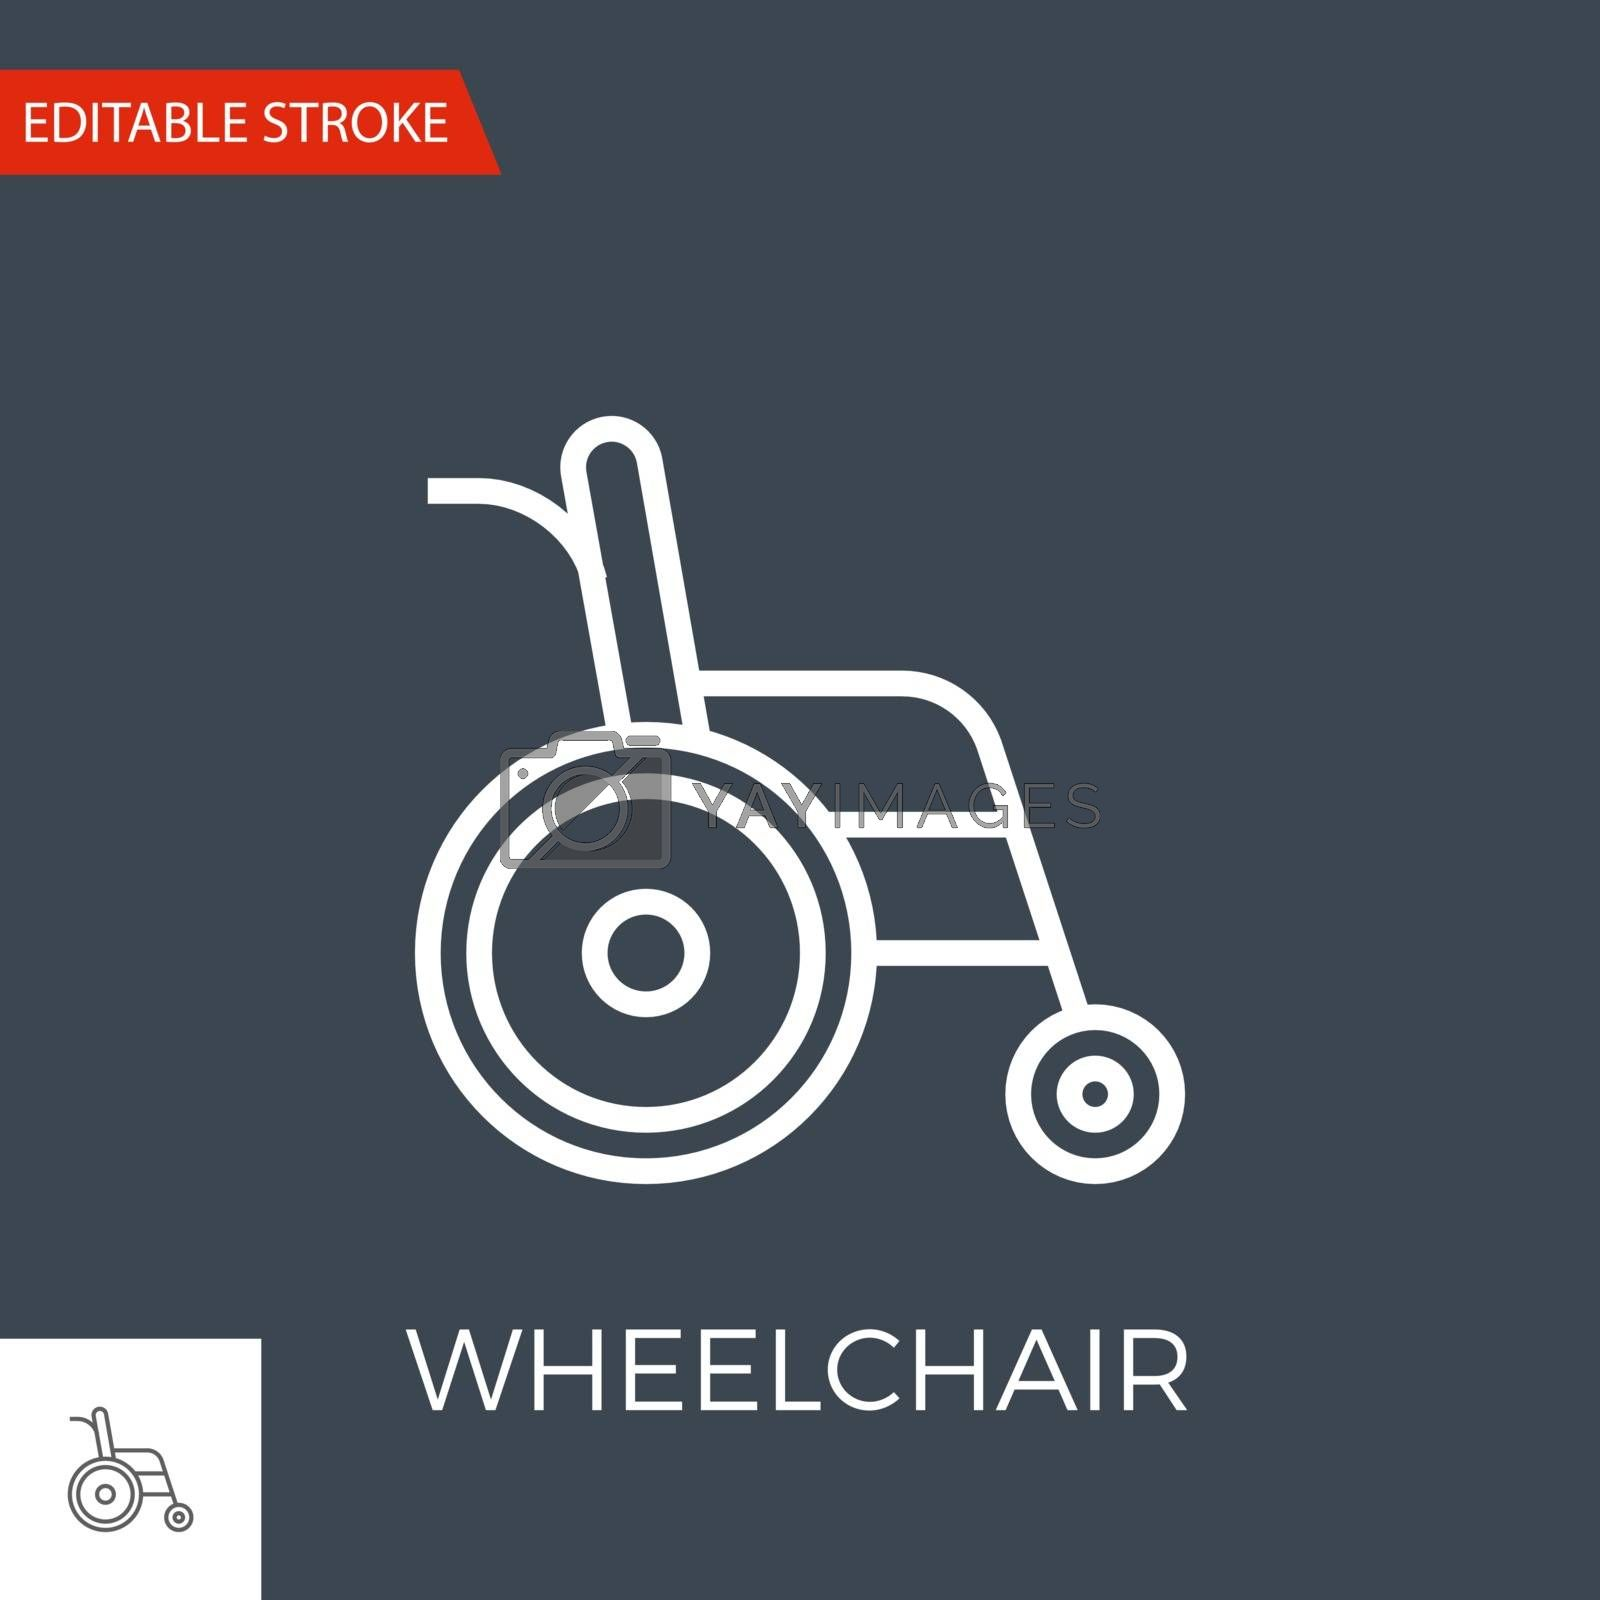 Wheelchair Thin Line Vector Icon. Flat Icon Isolated on the Black Background. Editable Stroke EPS file. Vector illustration.